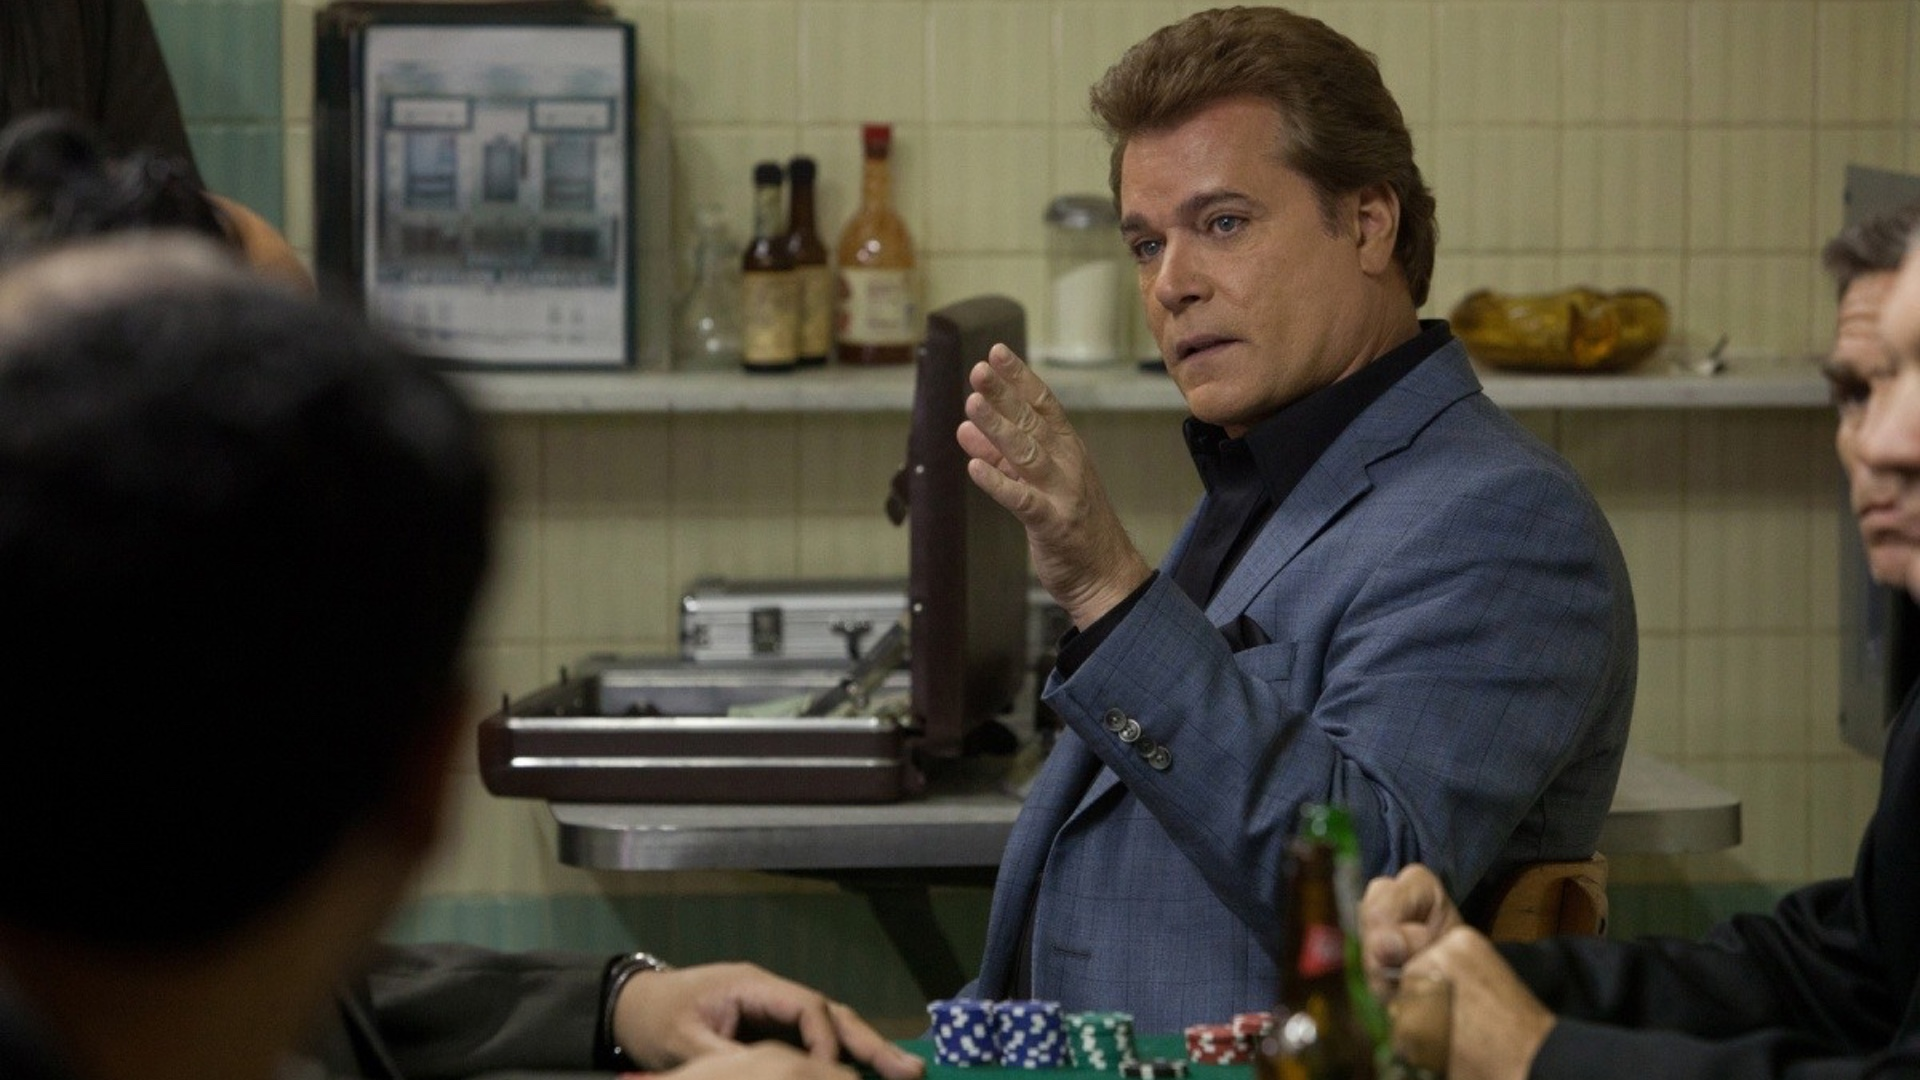 ray-liotta-is-joining-the-sopranos-prequel-the-many-saints-of-newark-social.jpg